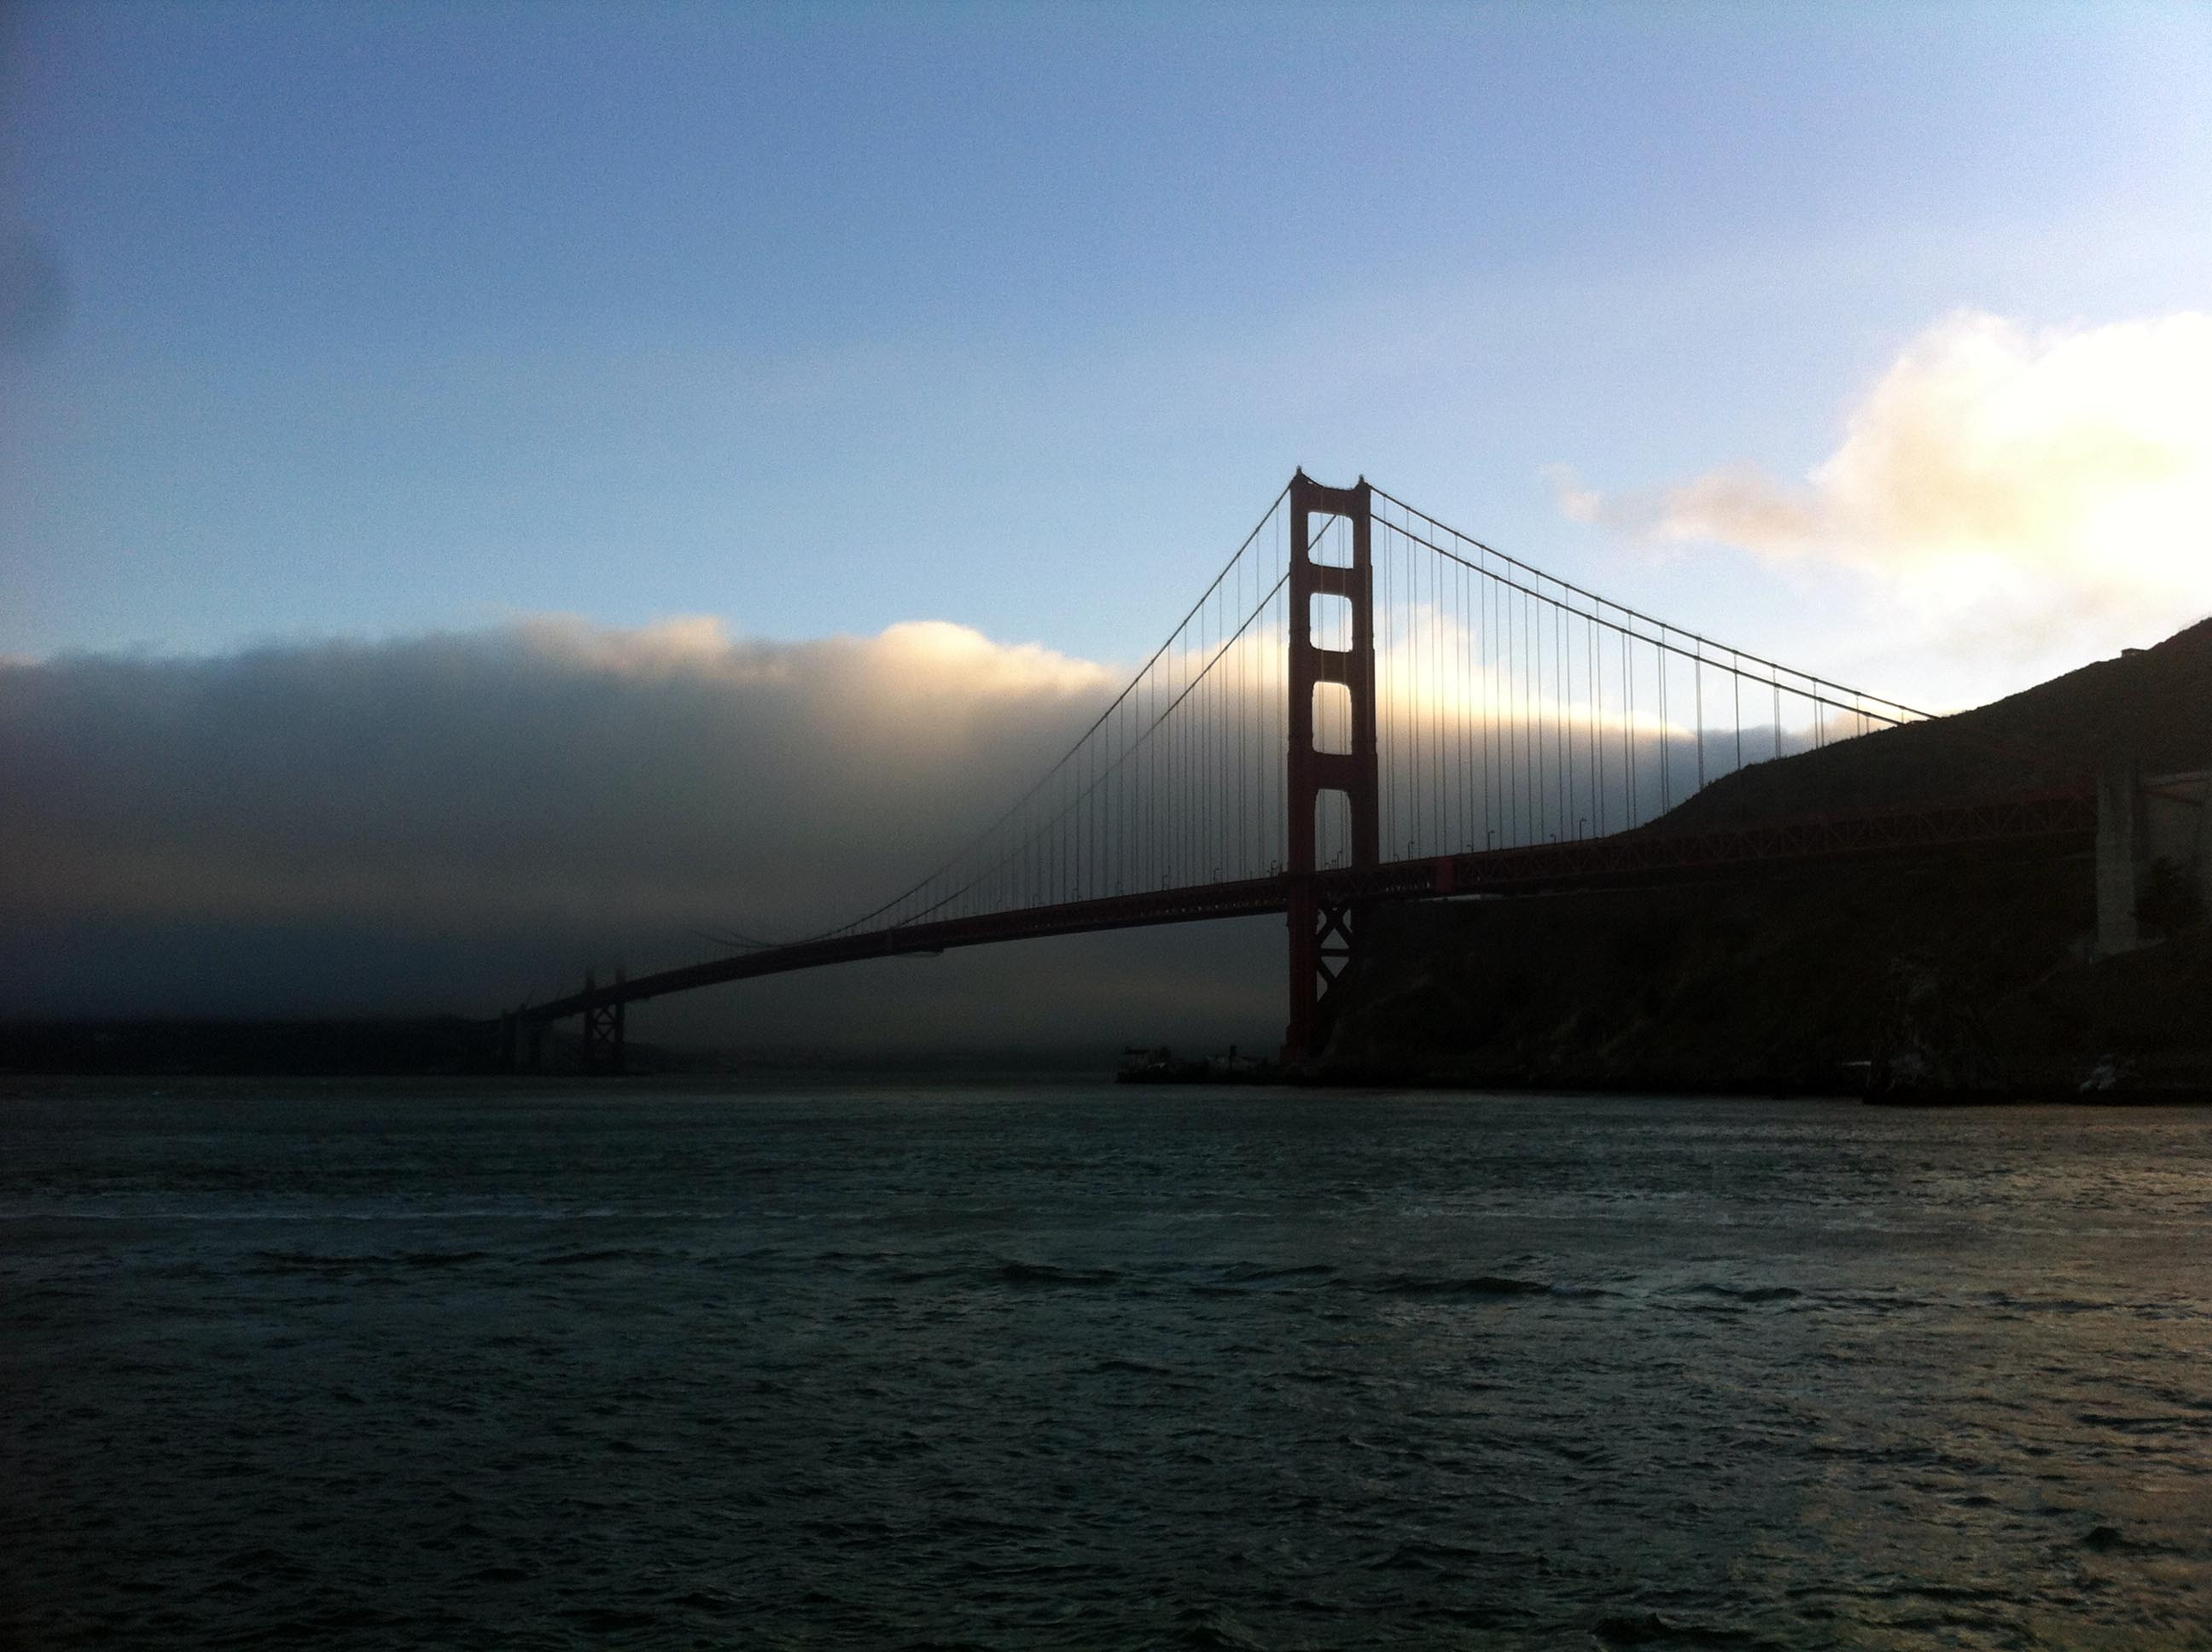 The Golden Gate Bridge bears northbound travelers out of San Francisco and into...? (photo by D. Speredelozzi)